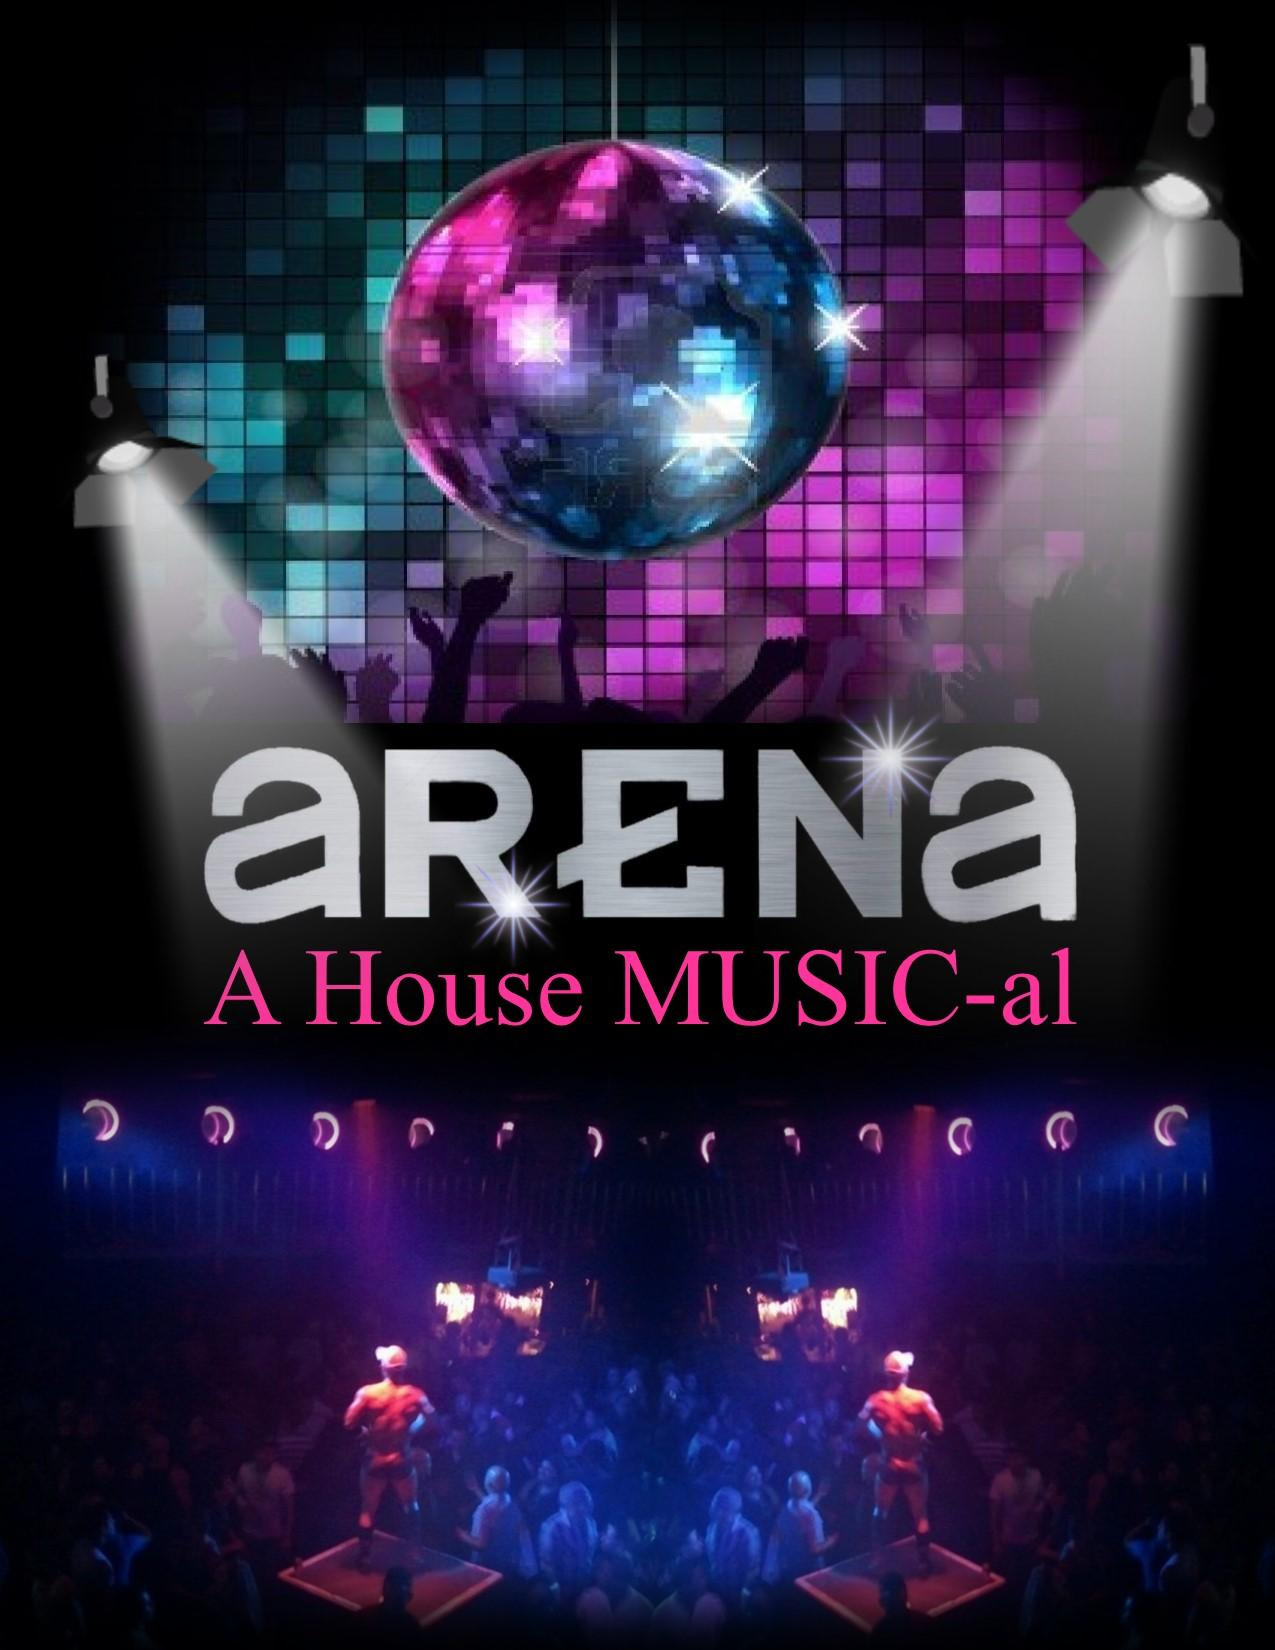 Arena: A House MUSIC-al